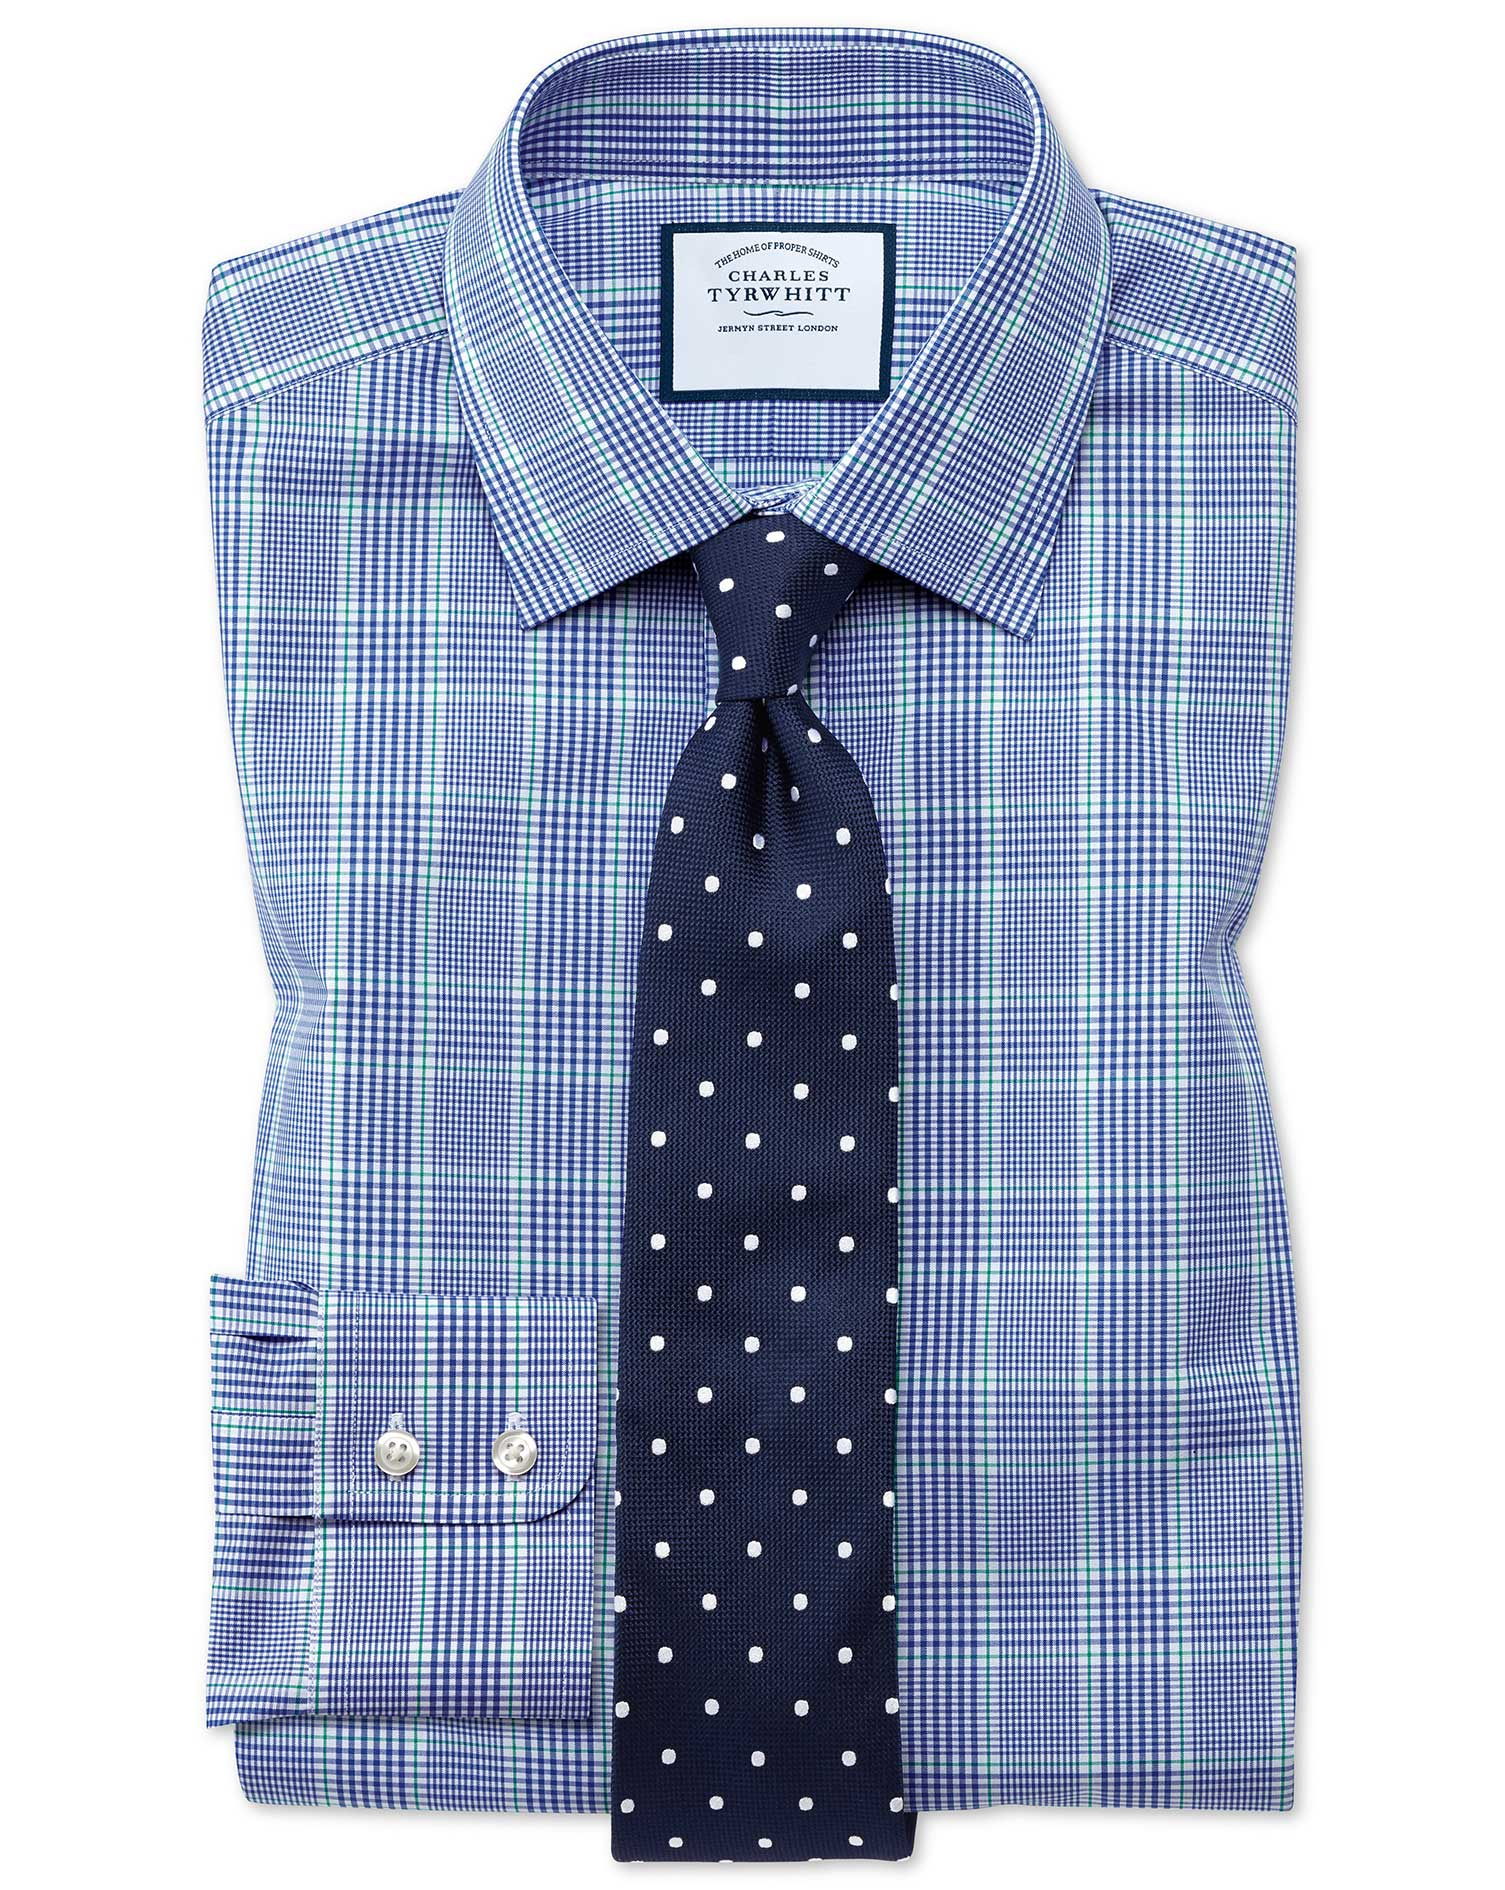 Extra Slim Fit Prince Of Wales Check Blue and Green Cotton Formal Shirt Double Cuff Size 16/36 by Ch